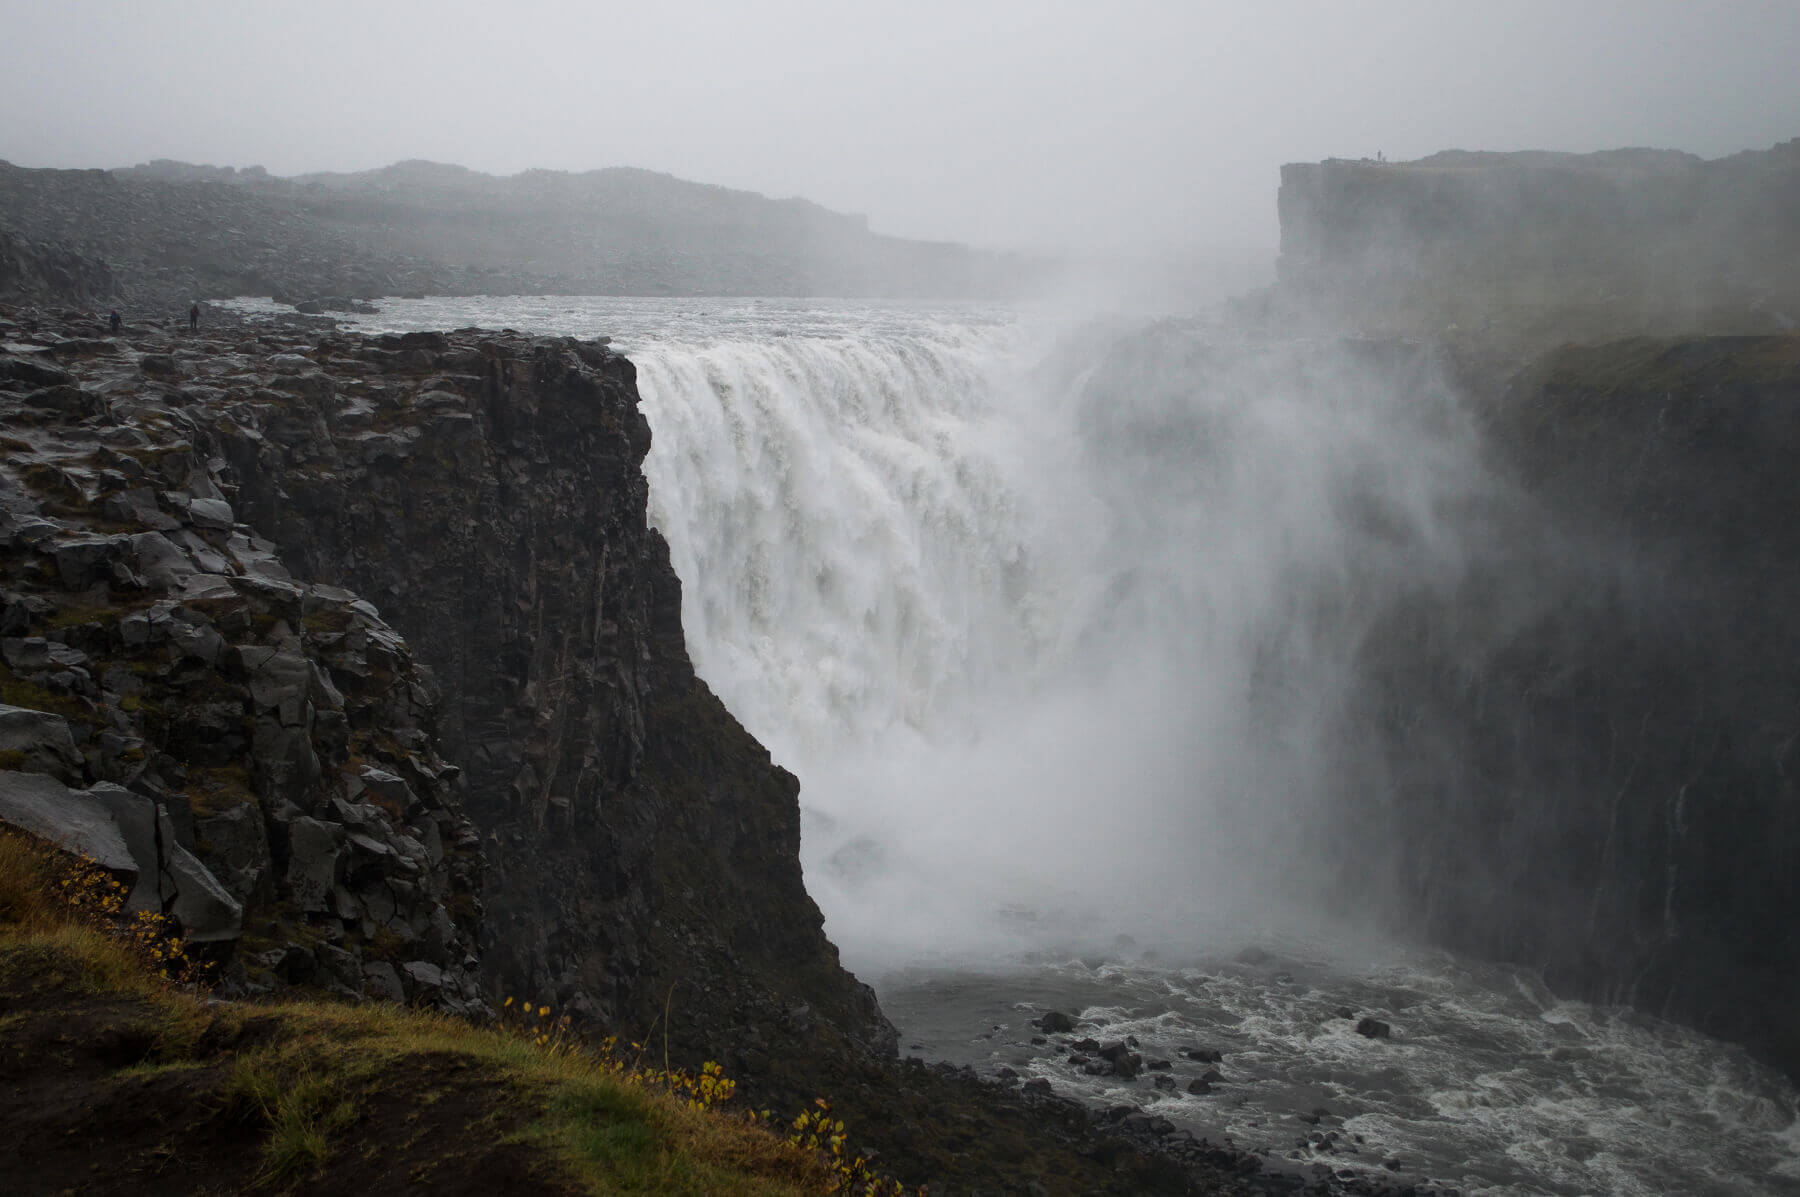 A very powerful waterfall in Iceland